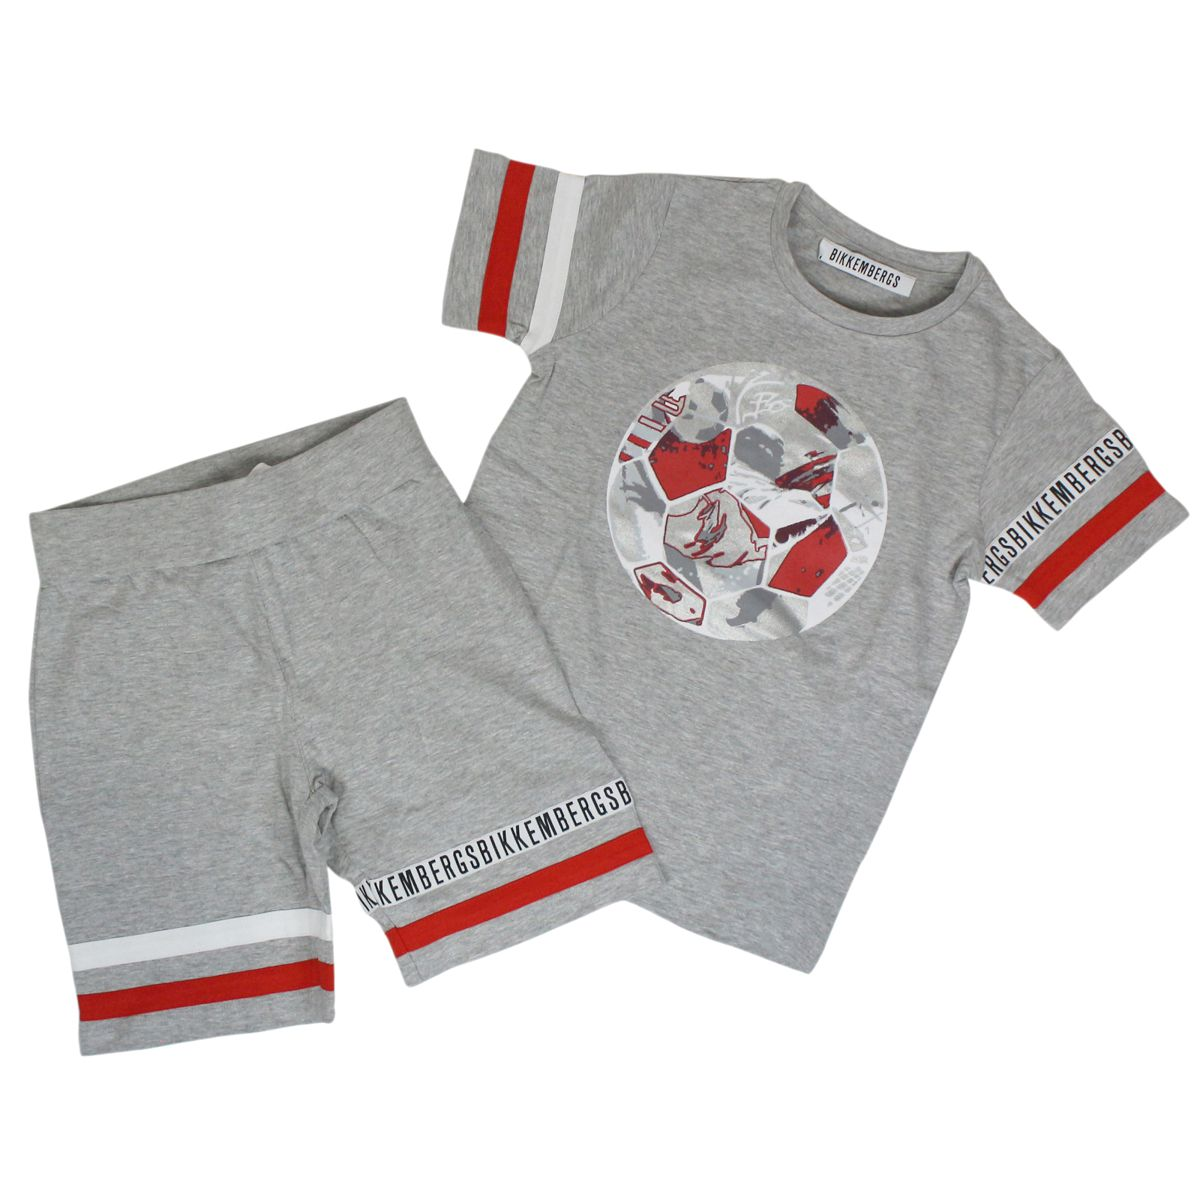 Complete with t-shirt and trousers Red BIKKEMBERGS